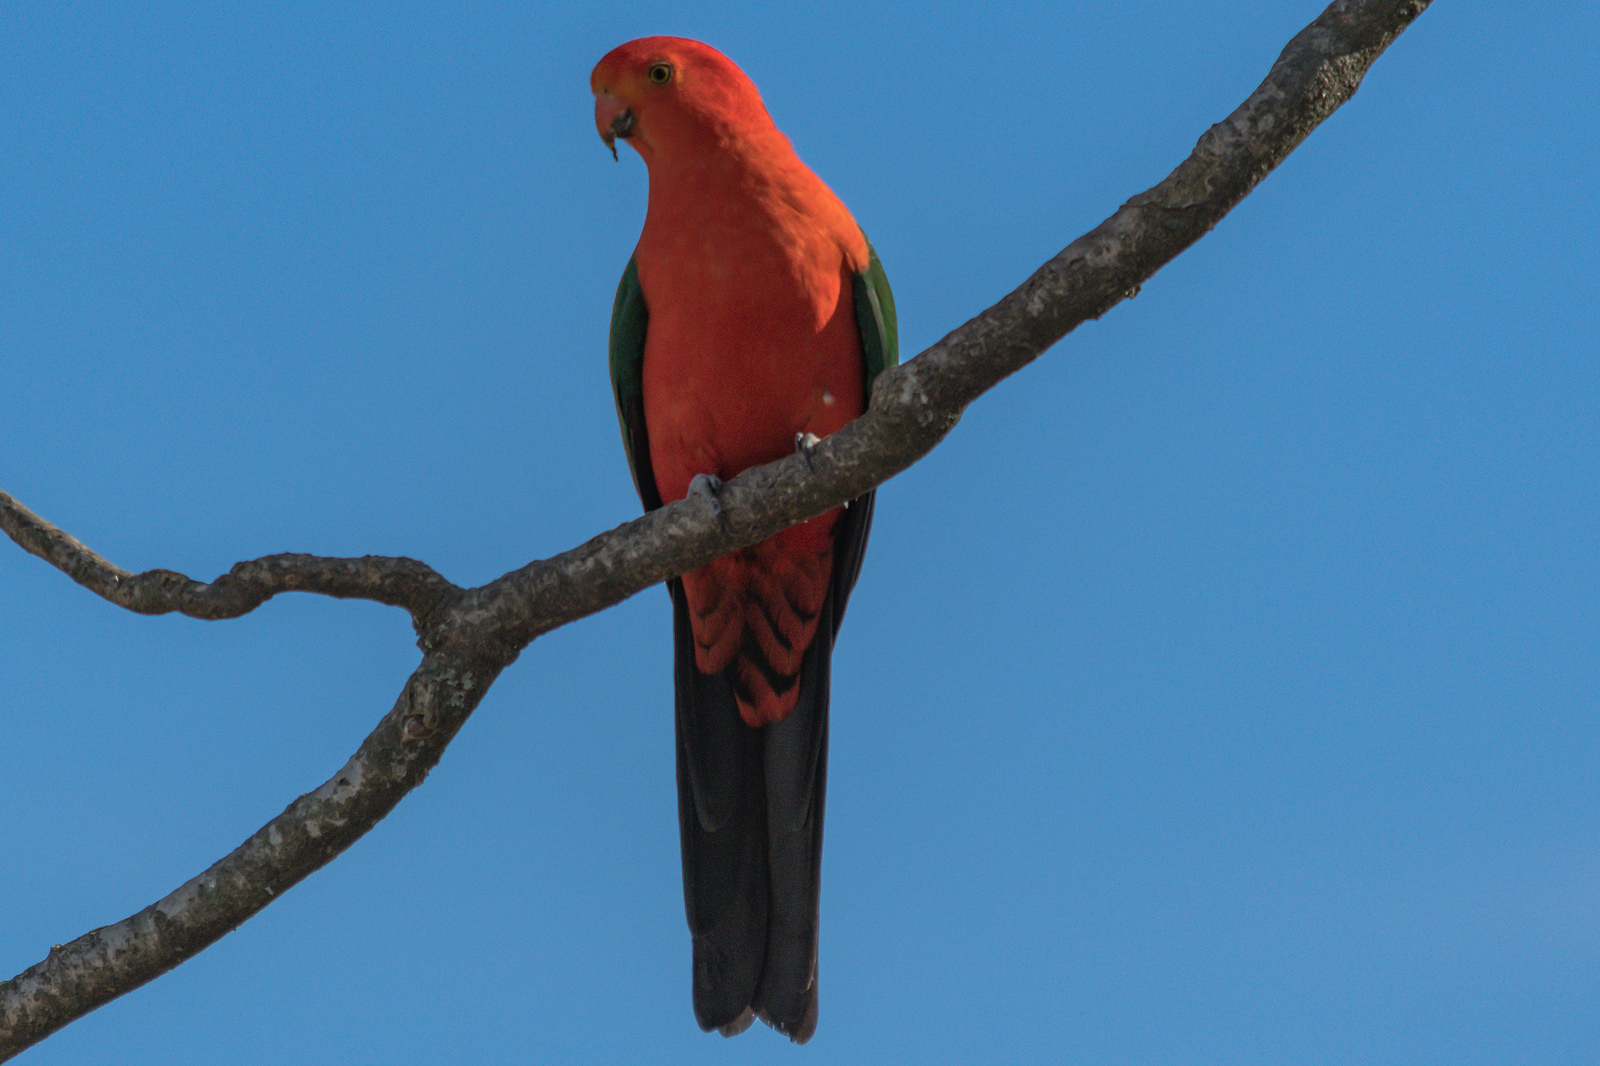 Australian King Parrot on tree branch